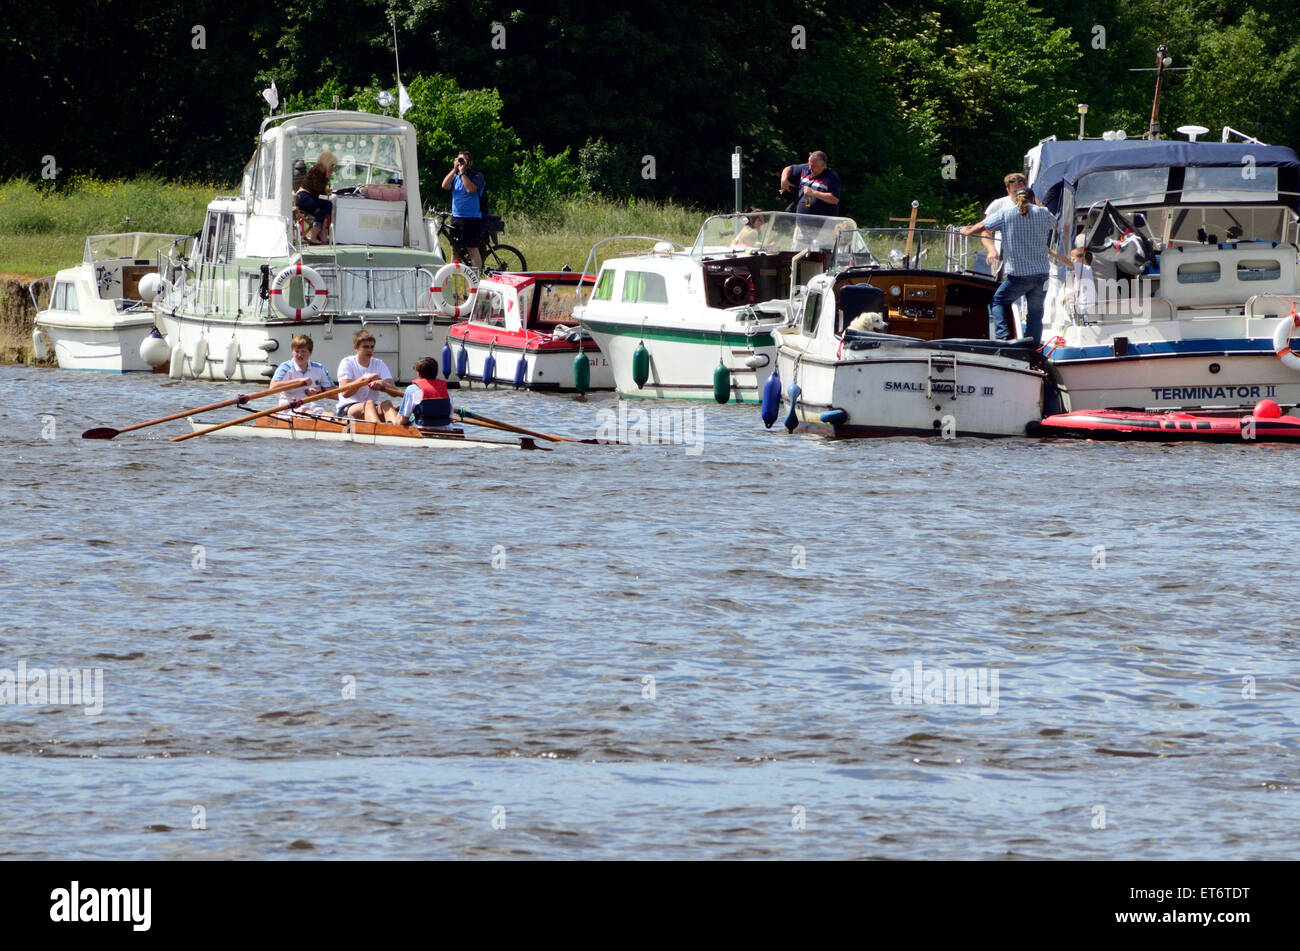 A coxed pair rowing crew row past pleasure boats which are moored on the banks of The River Thames at Windsor. - Stock Image